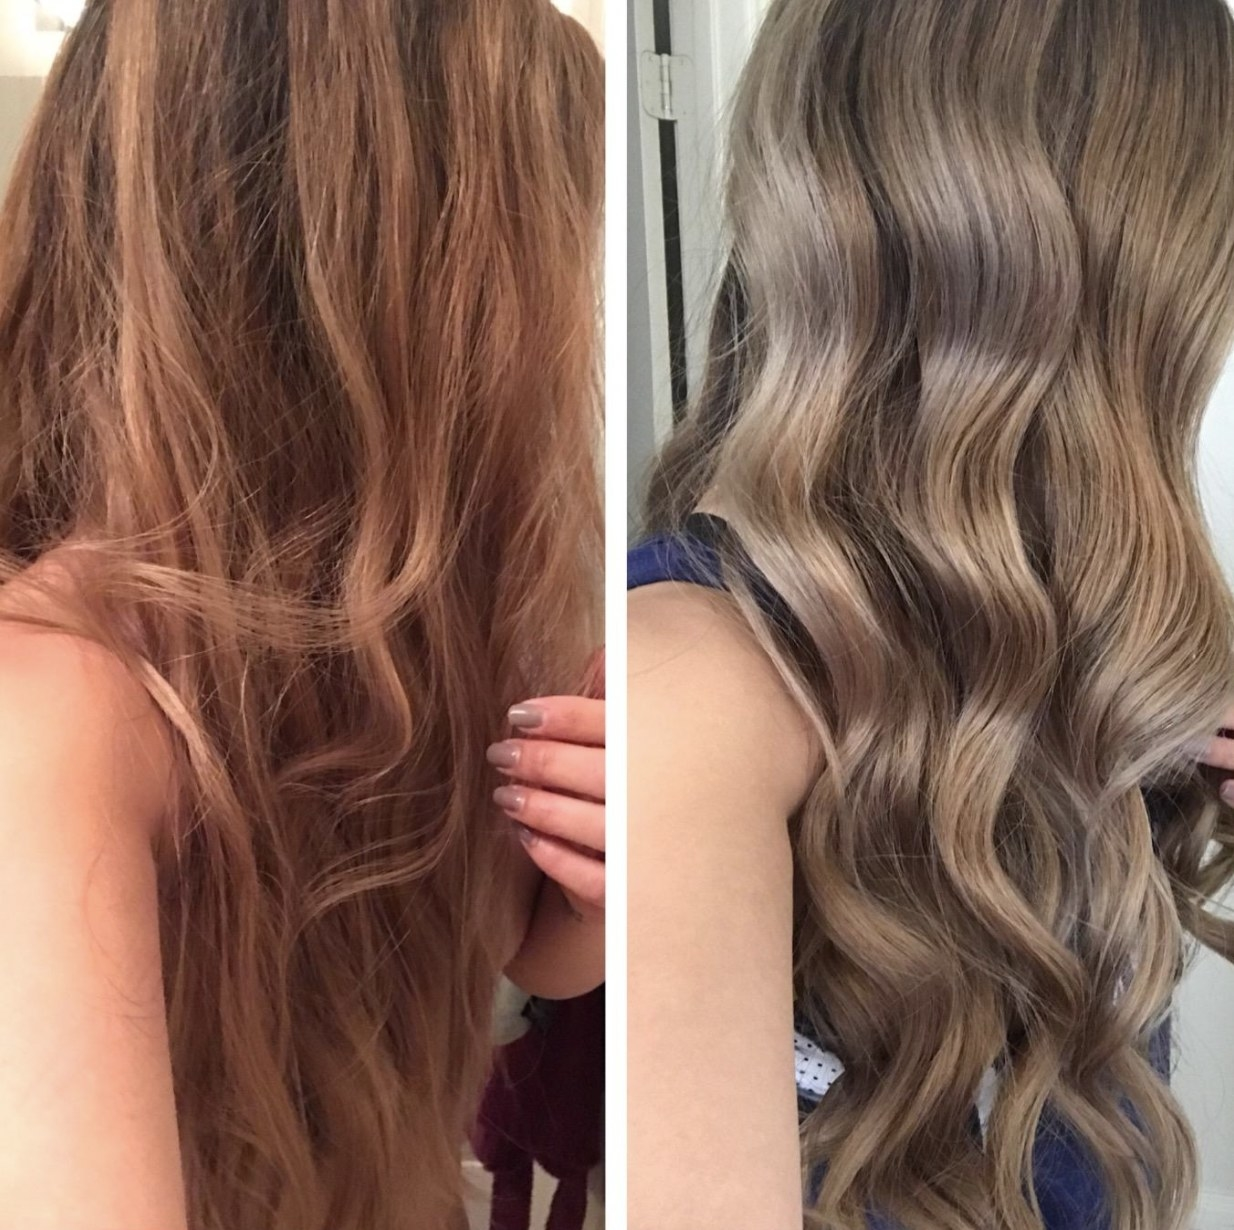 a person before and after using the shampoo in their brassy hair